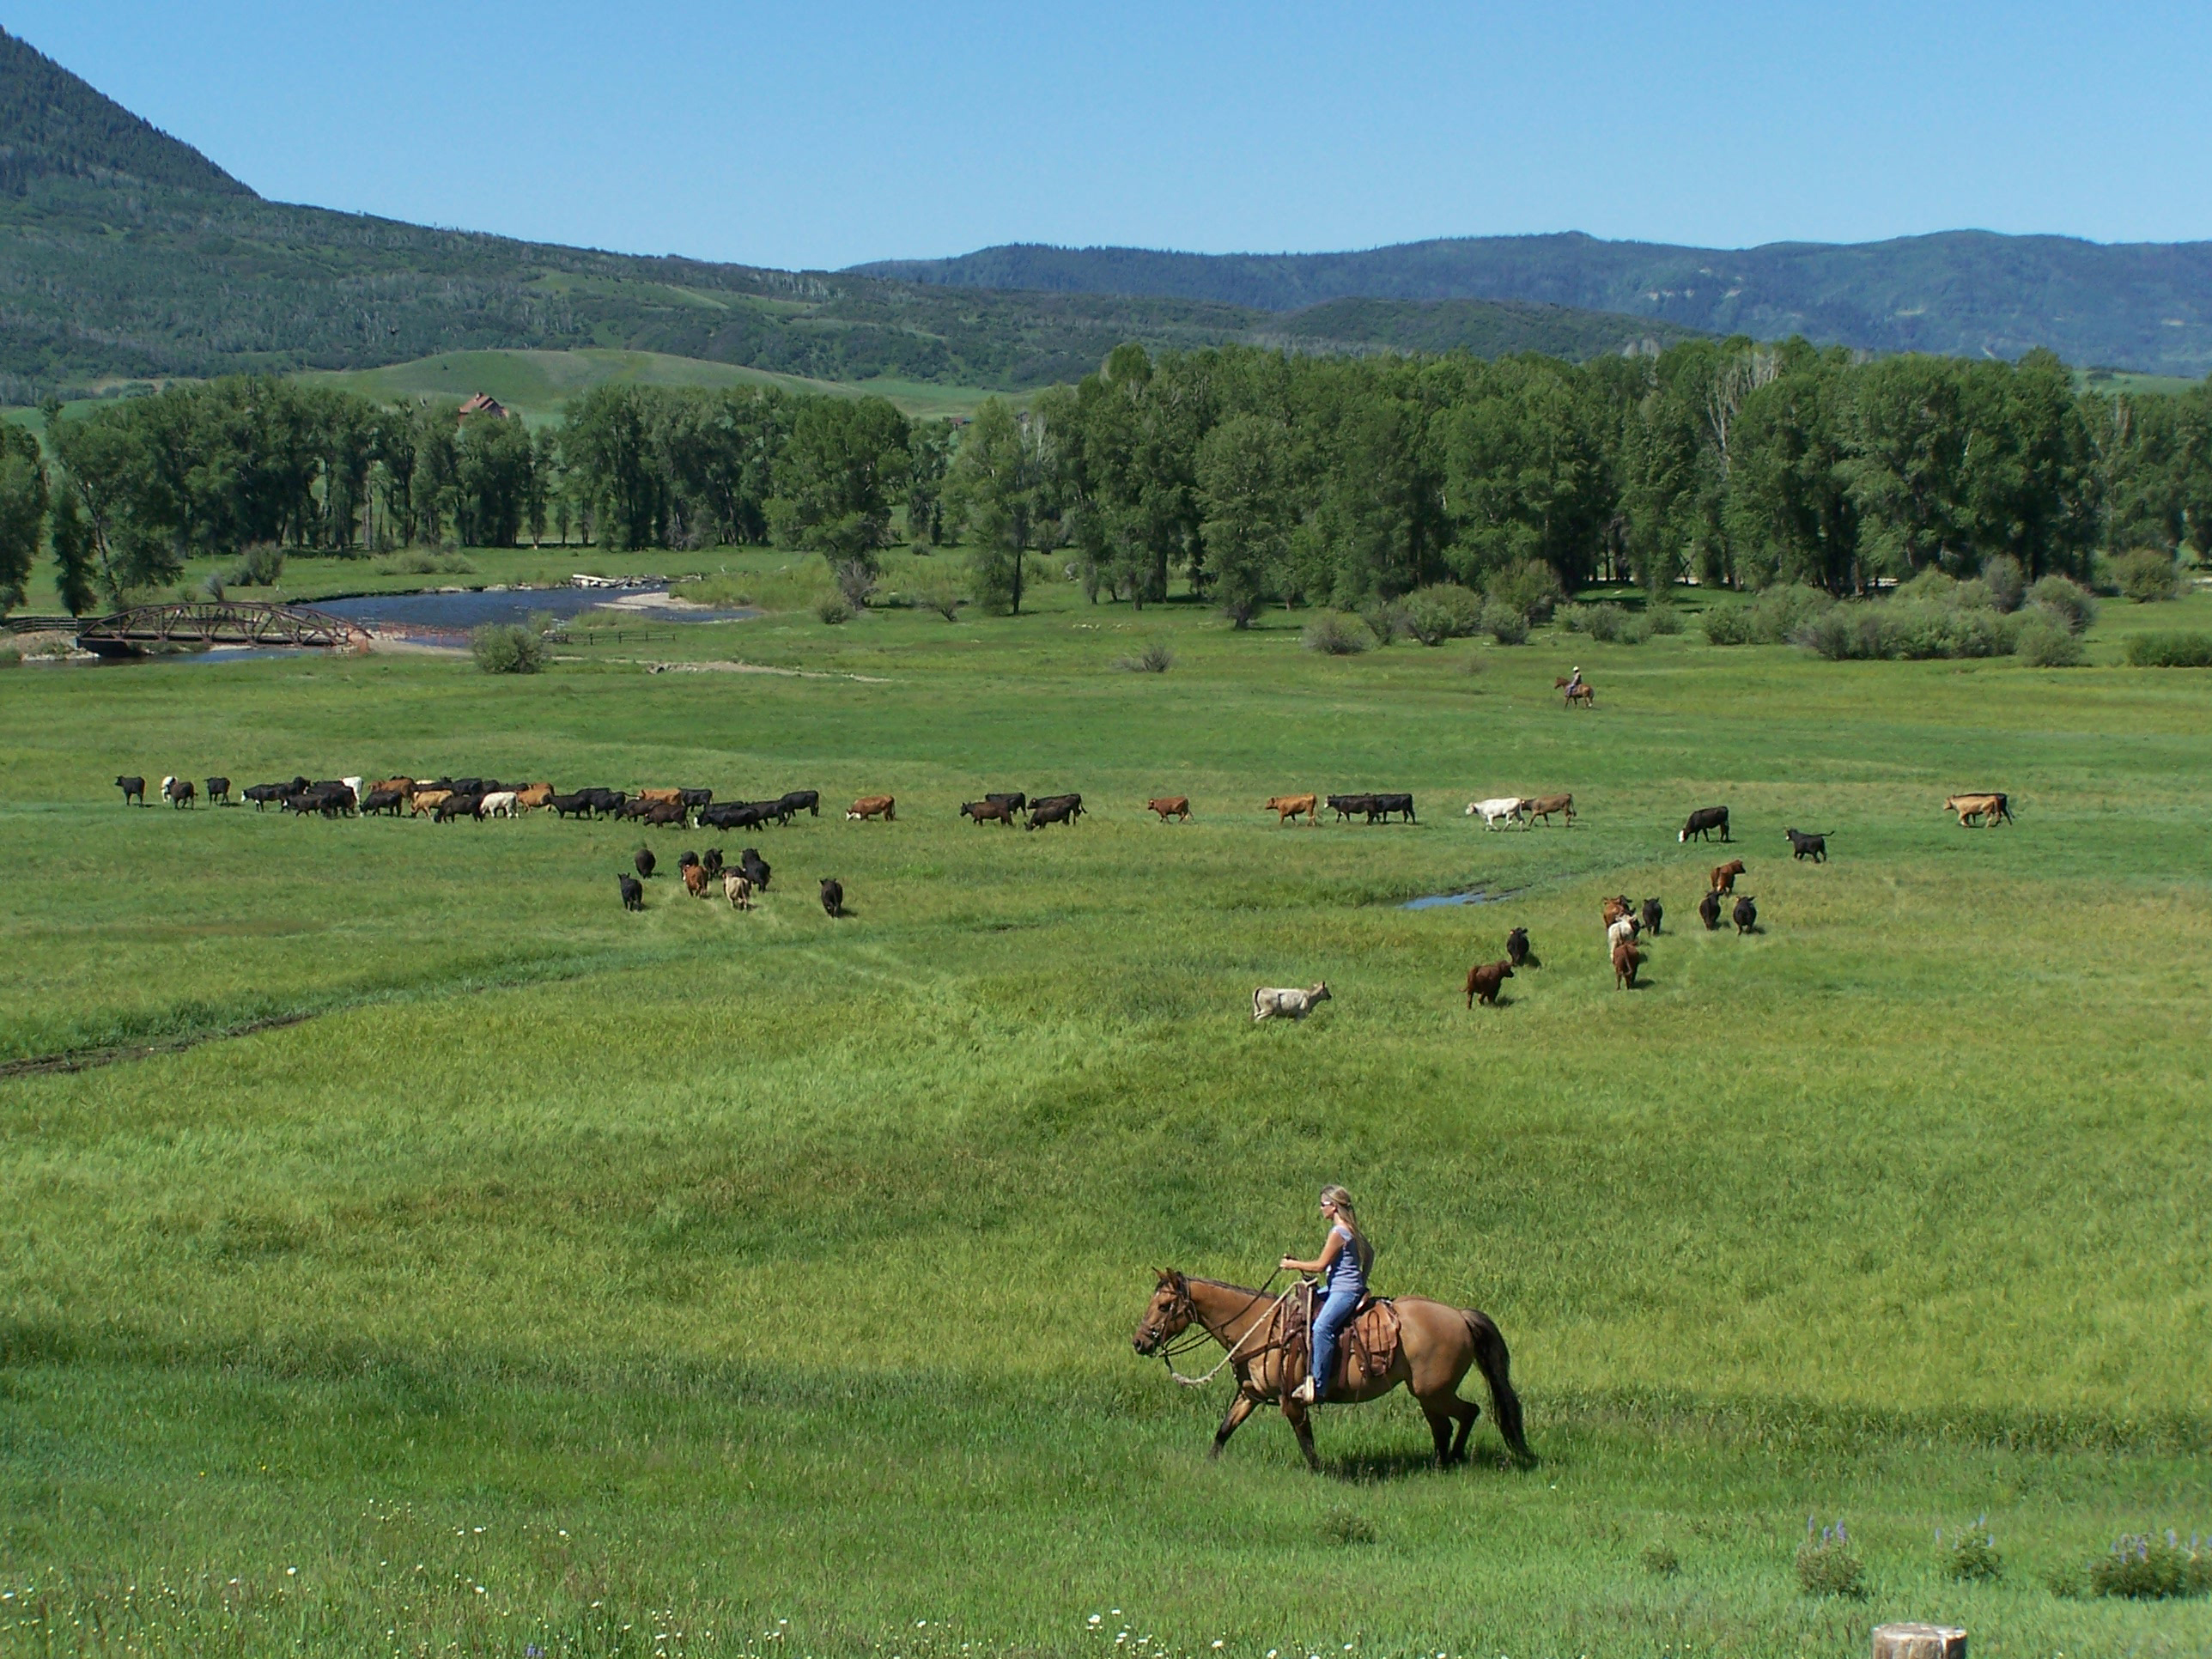 Christy Belton on horseback with her cows